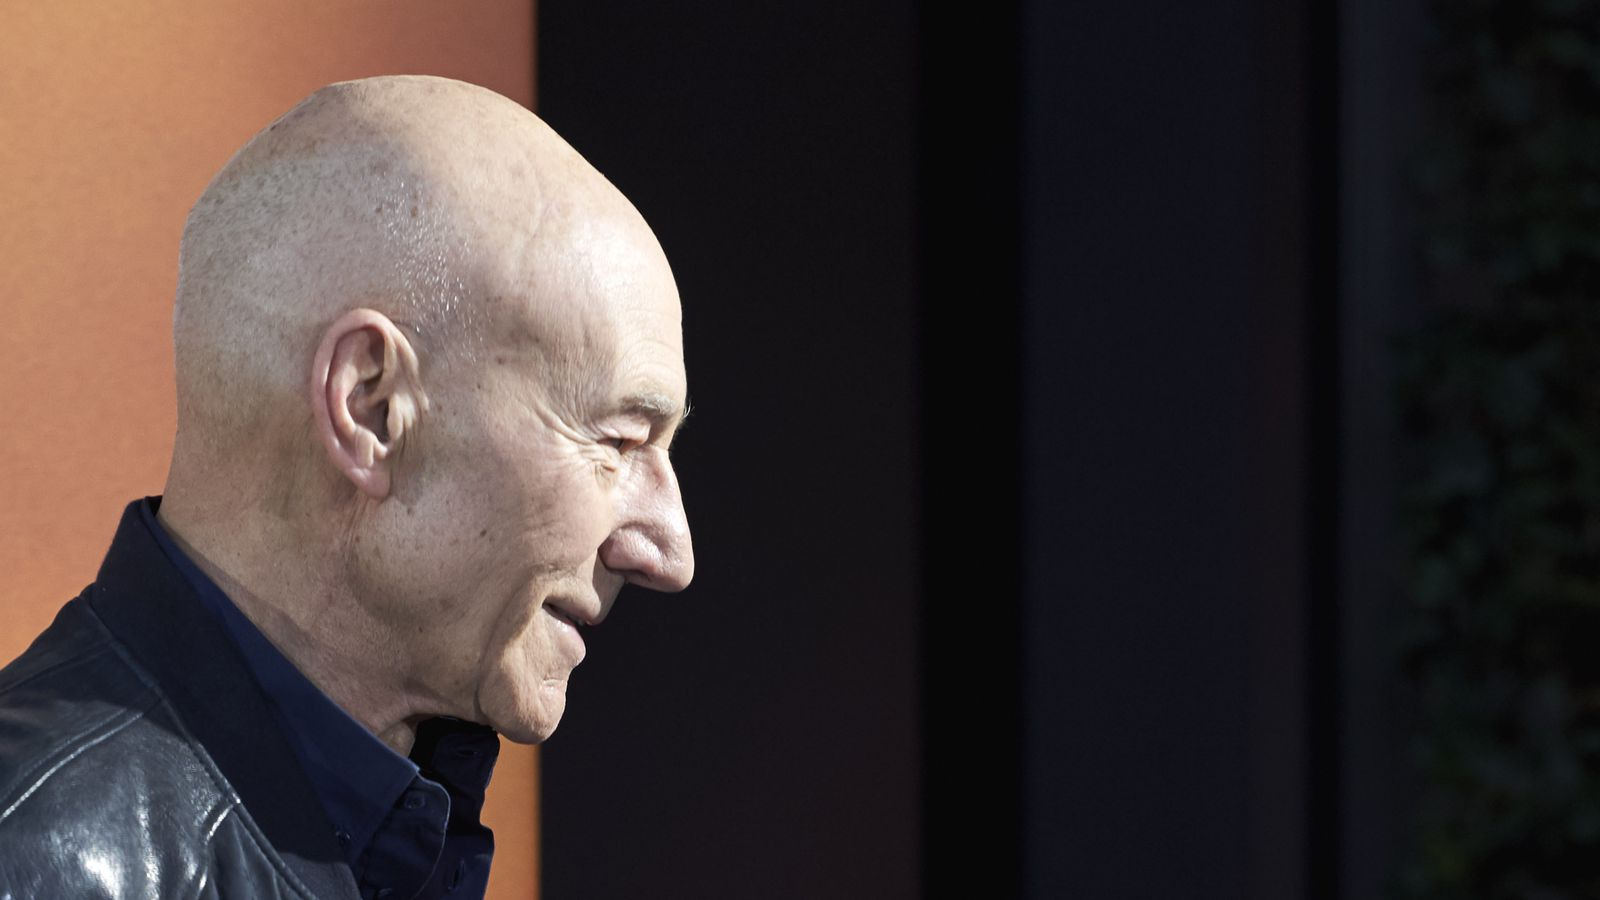 After Logan, Patrick Stewart is leaving the X-Men franchise